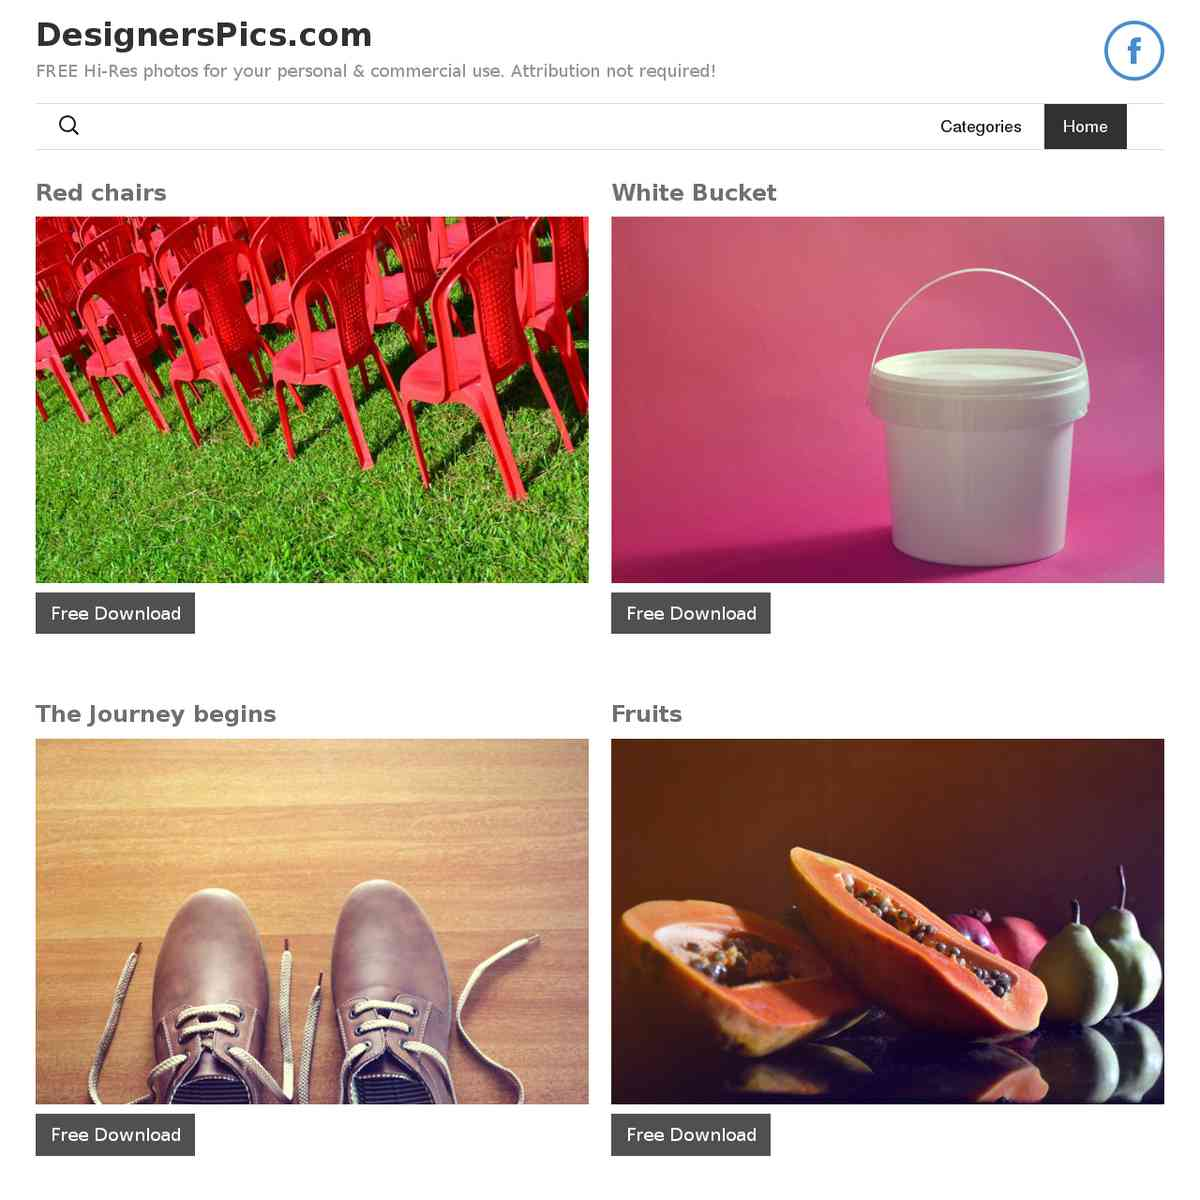 DesignersPics - Free Photographs for your commercial and personal works